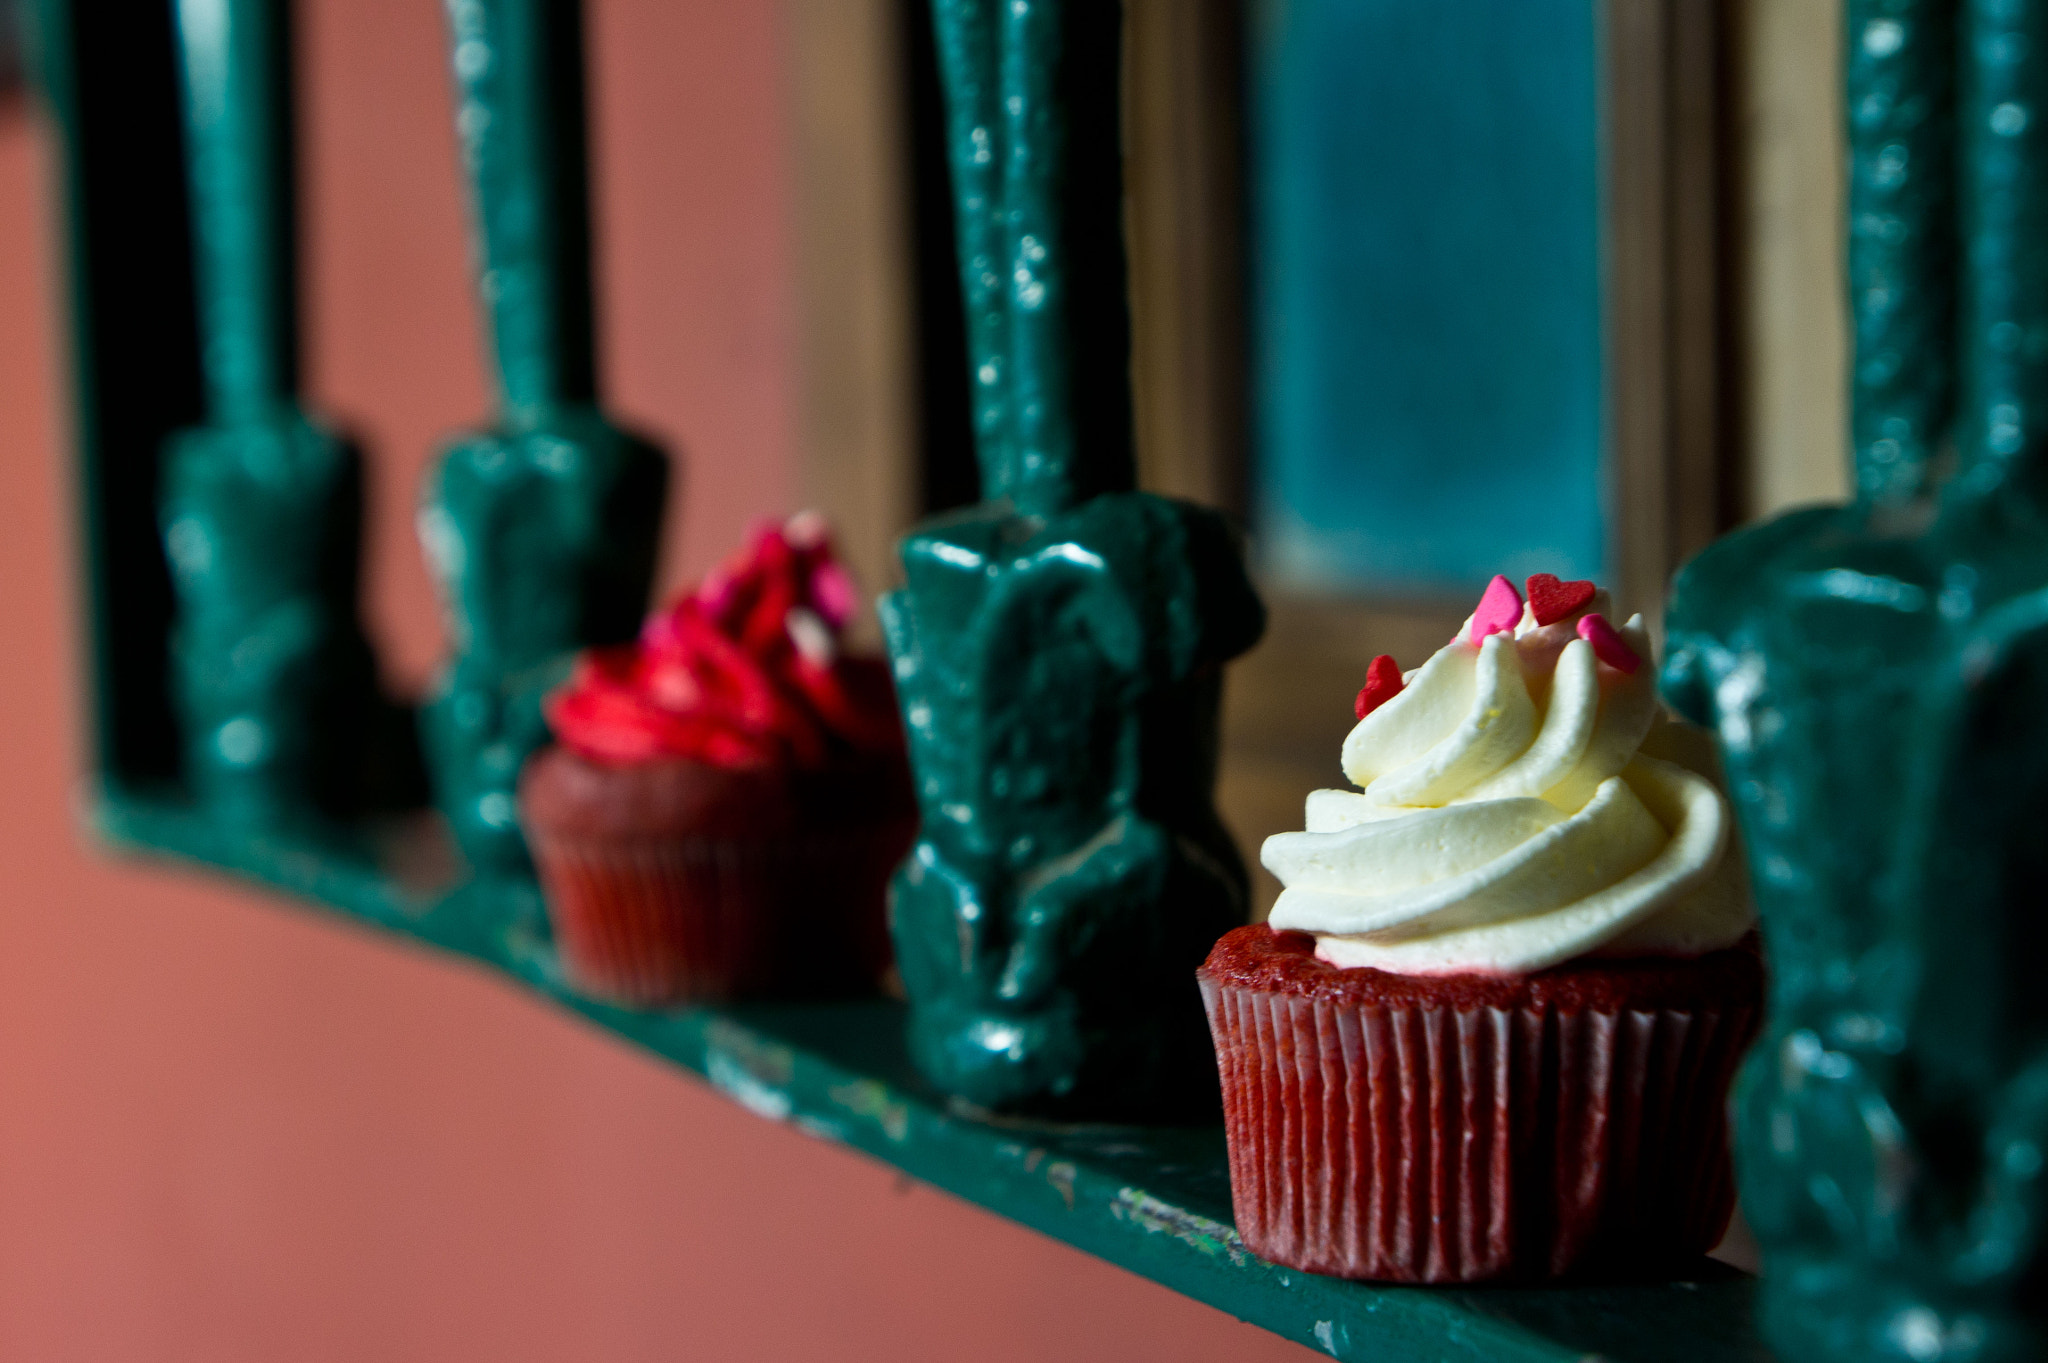 Photograph Cupcakes by Erick Chévez Rivera on 500px